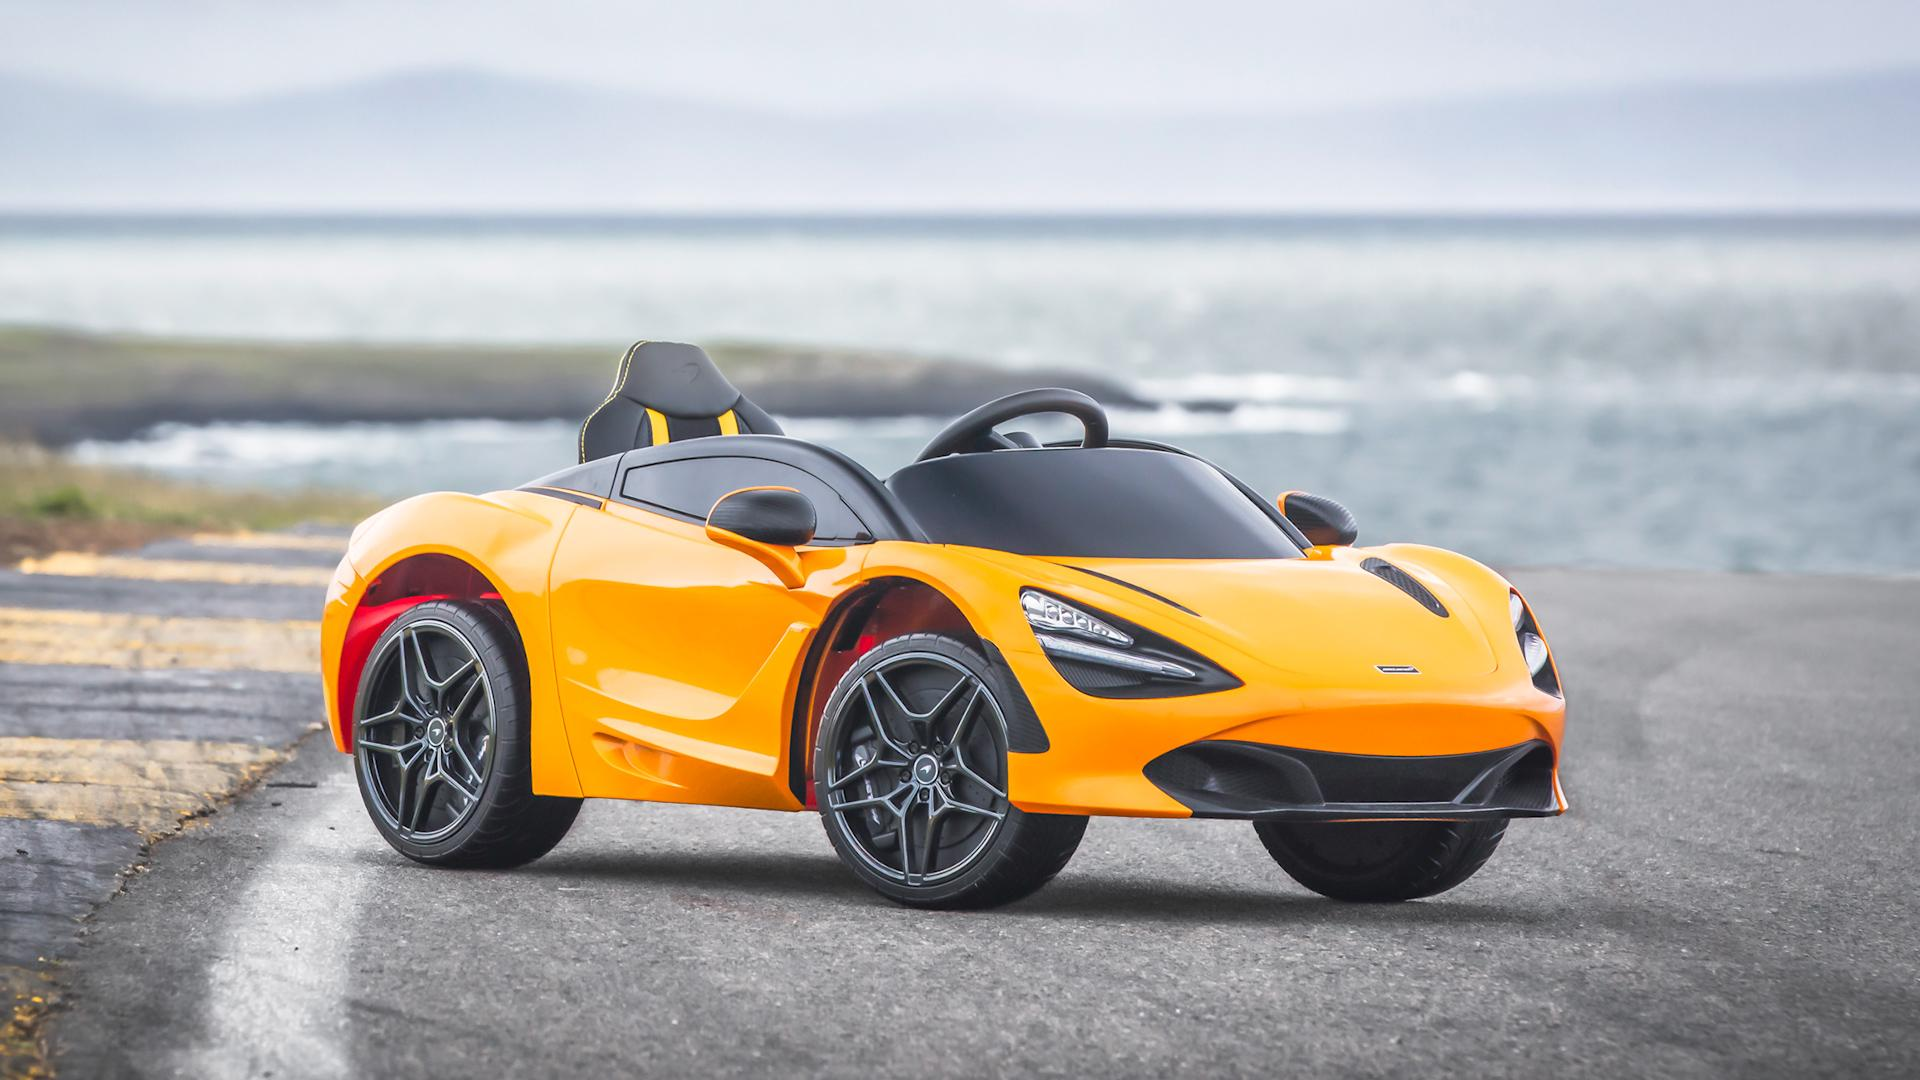 This McLaren 720S ride-on toy is a supercar for kids